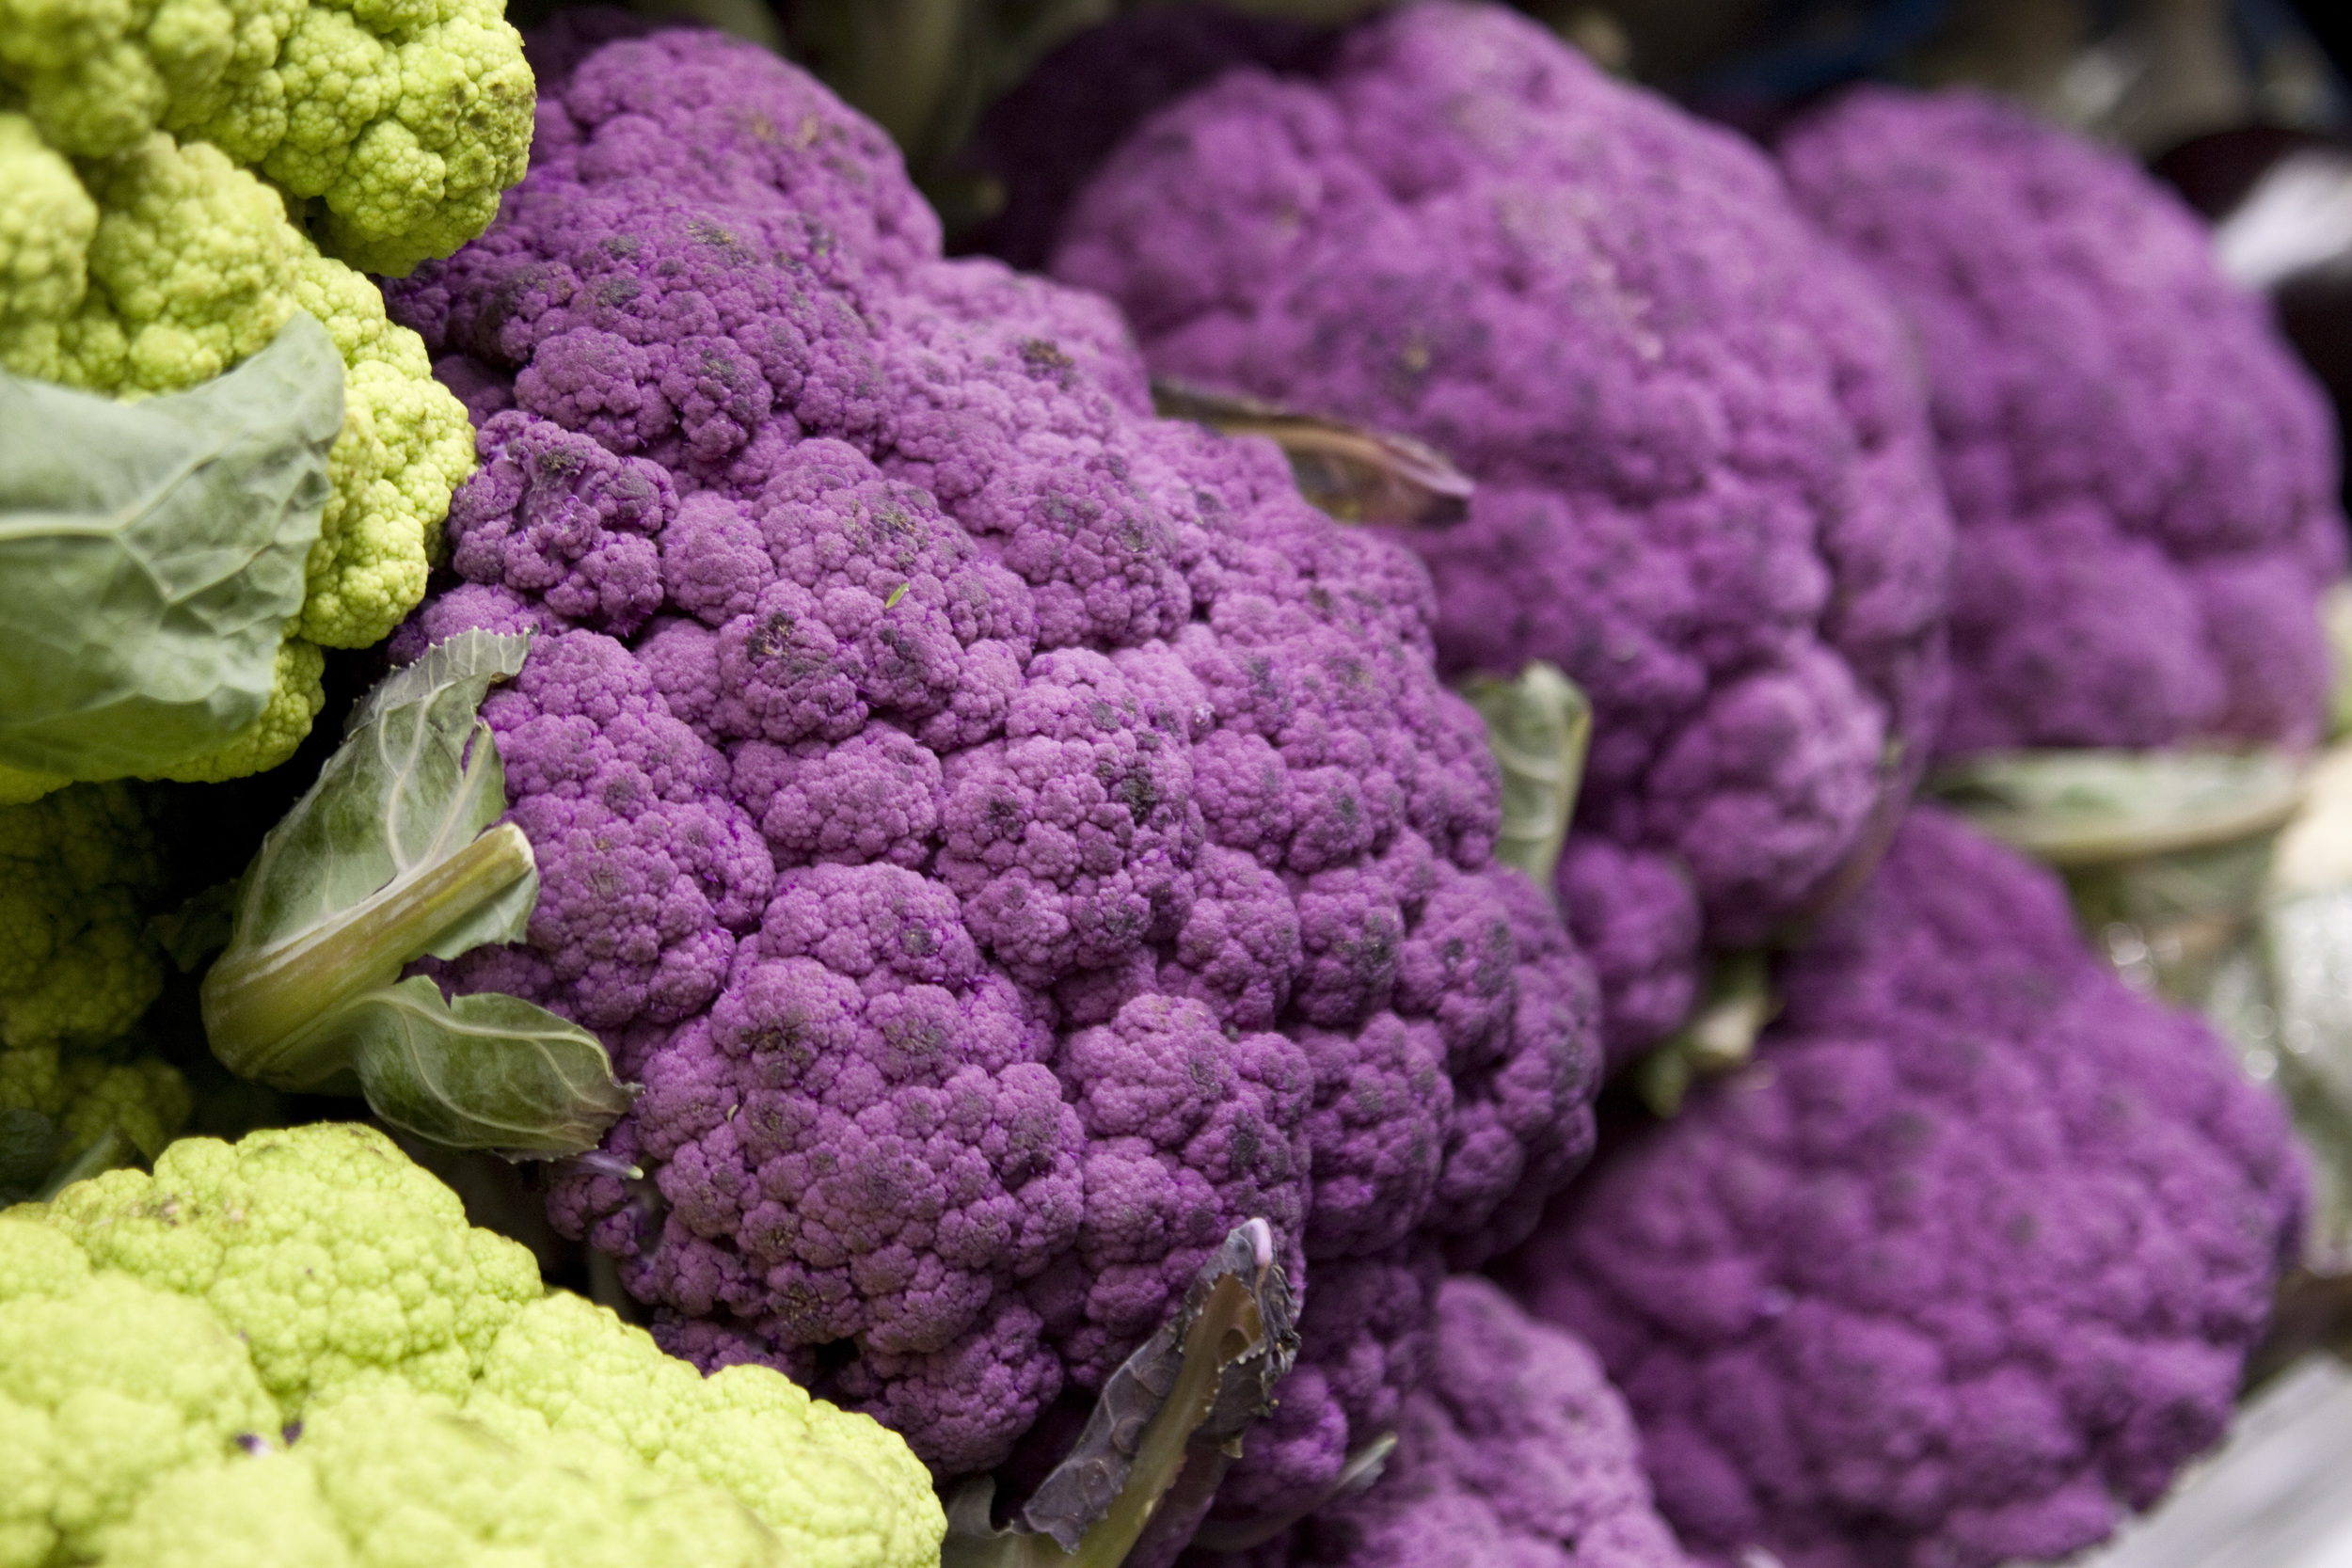 Purple Cauliflower from Mana Foods Produce Department